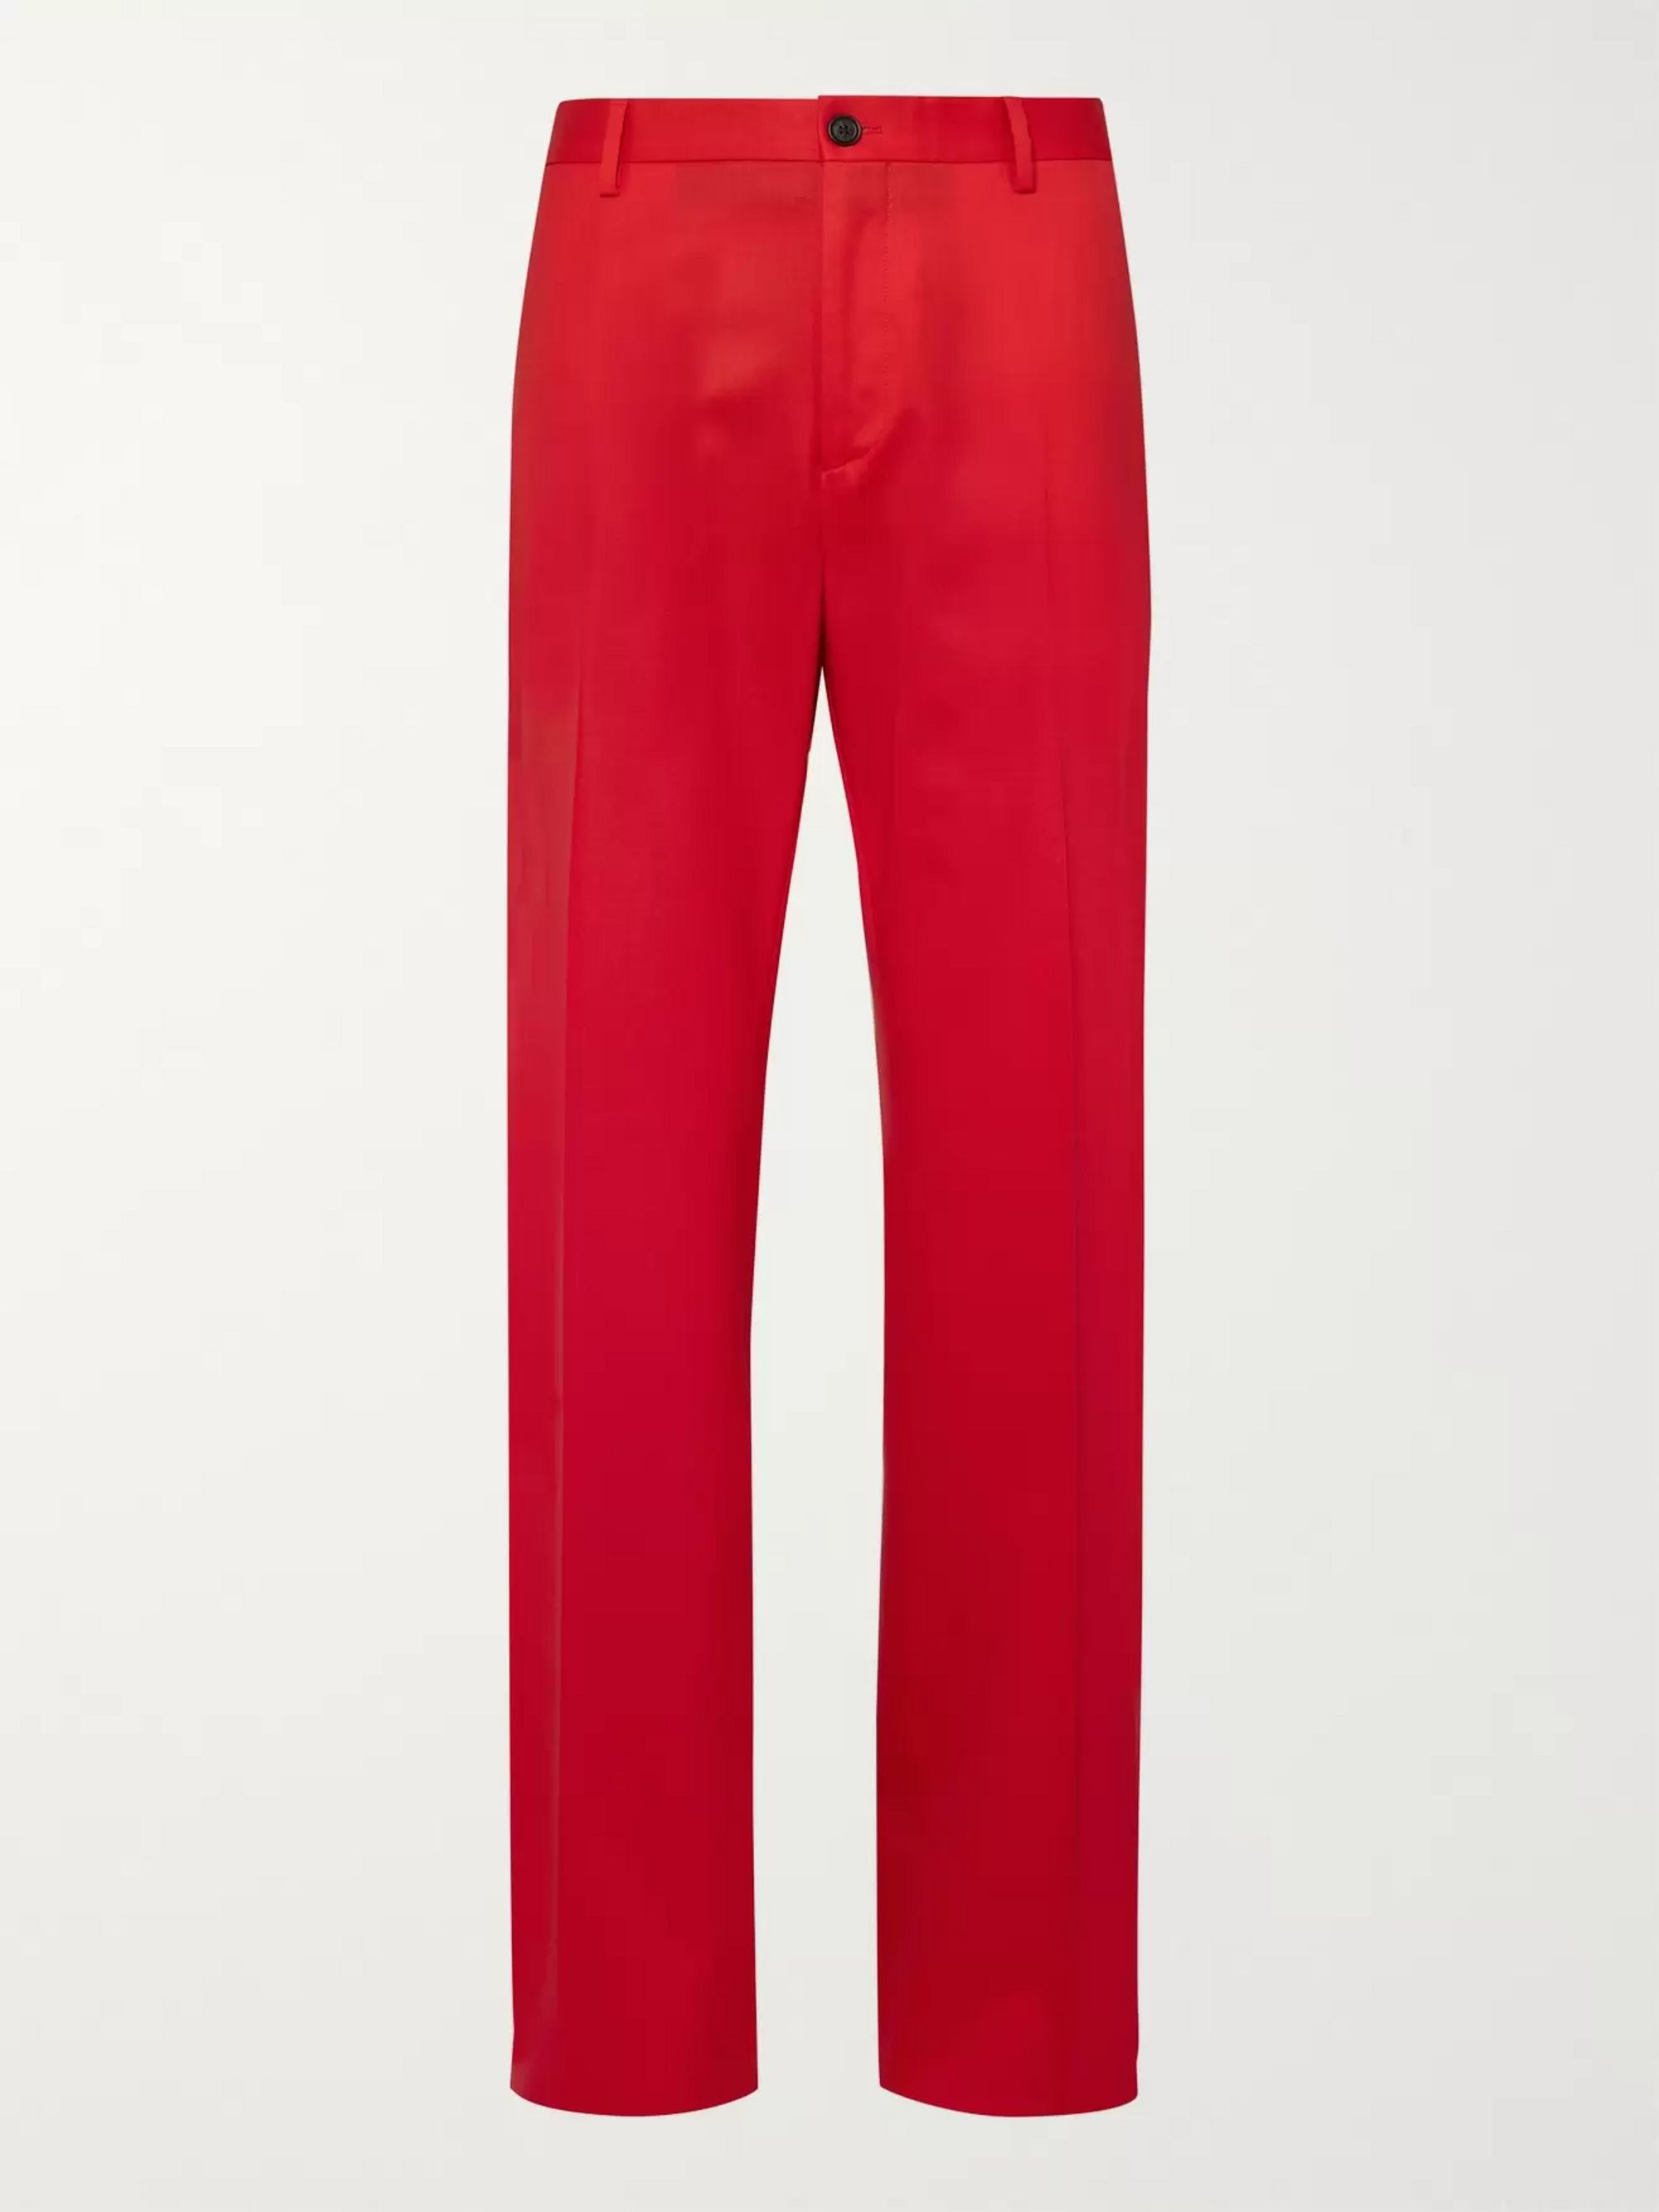 Versace Red Stretch-Wool Twill Suit Trousers